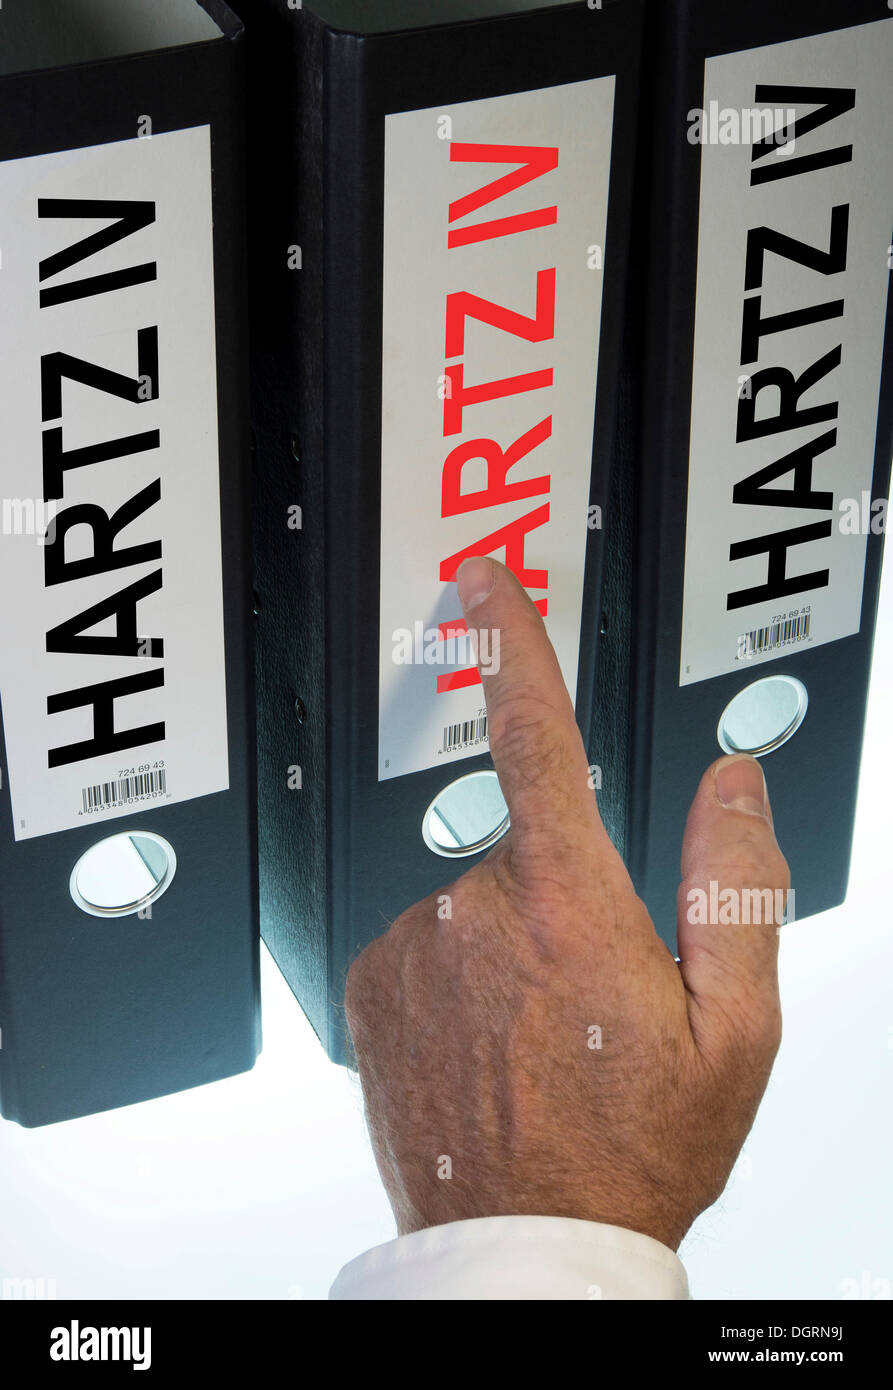 Hand pointing to a ring binder labeled Hartz IV, German term for long-term unemployment benefits, symbolic image - Stock Image